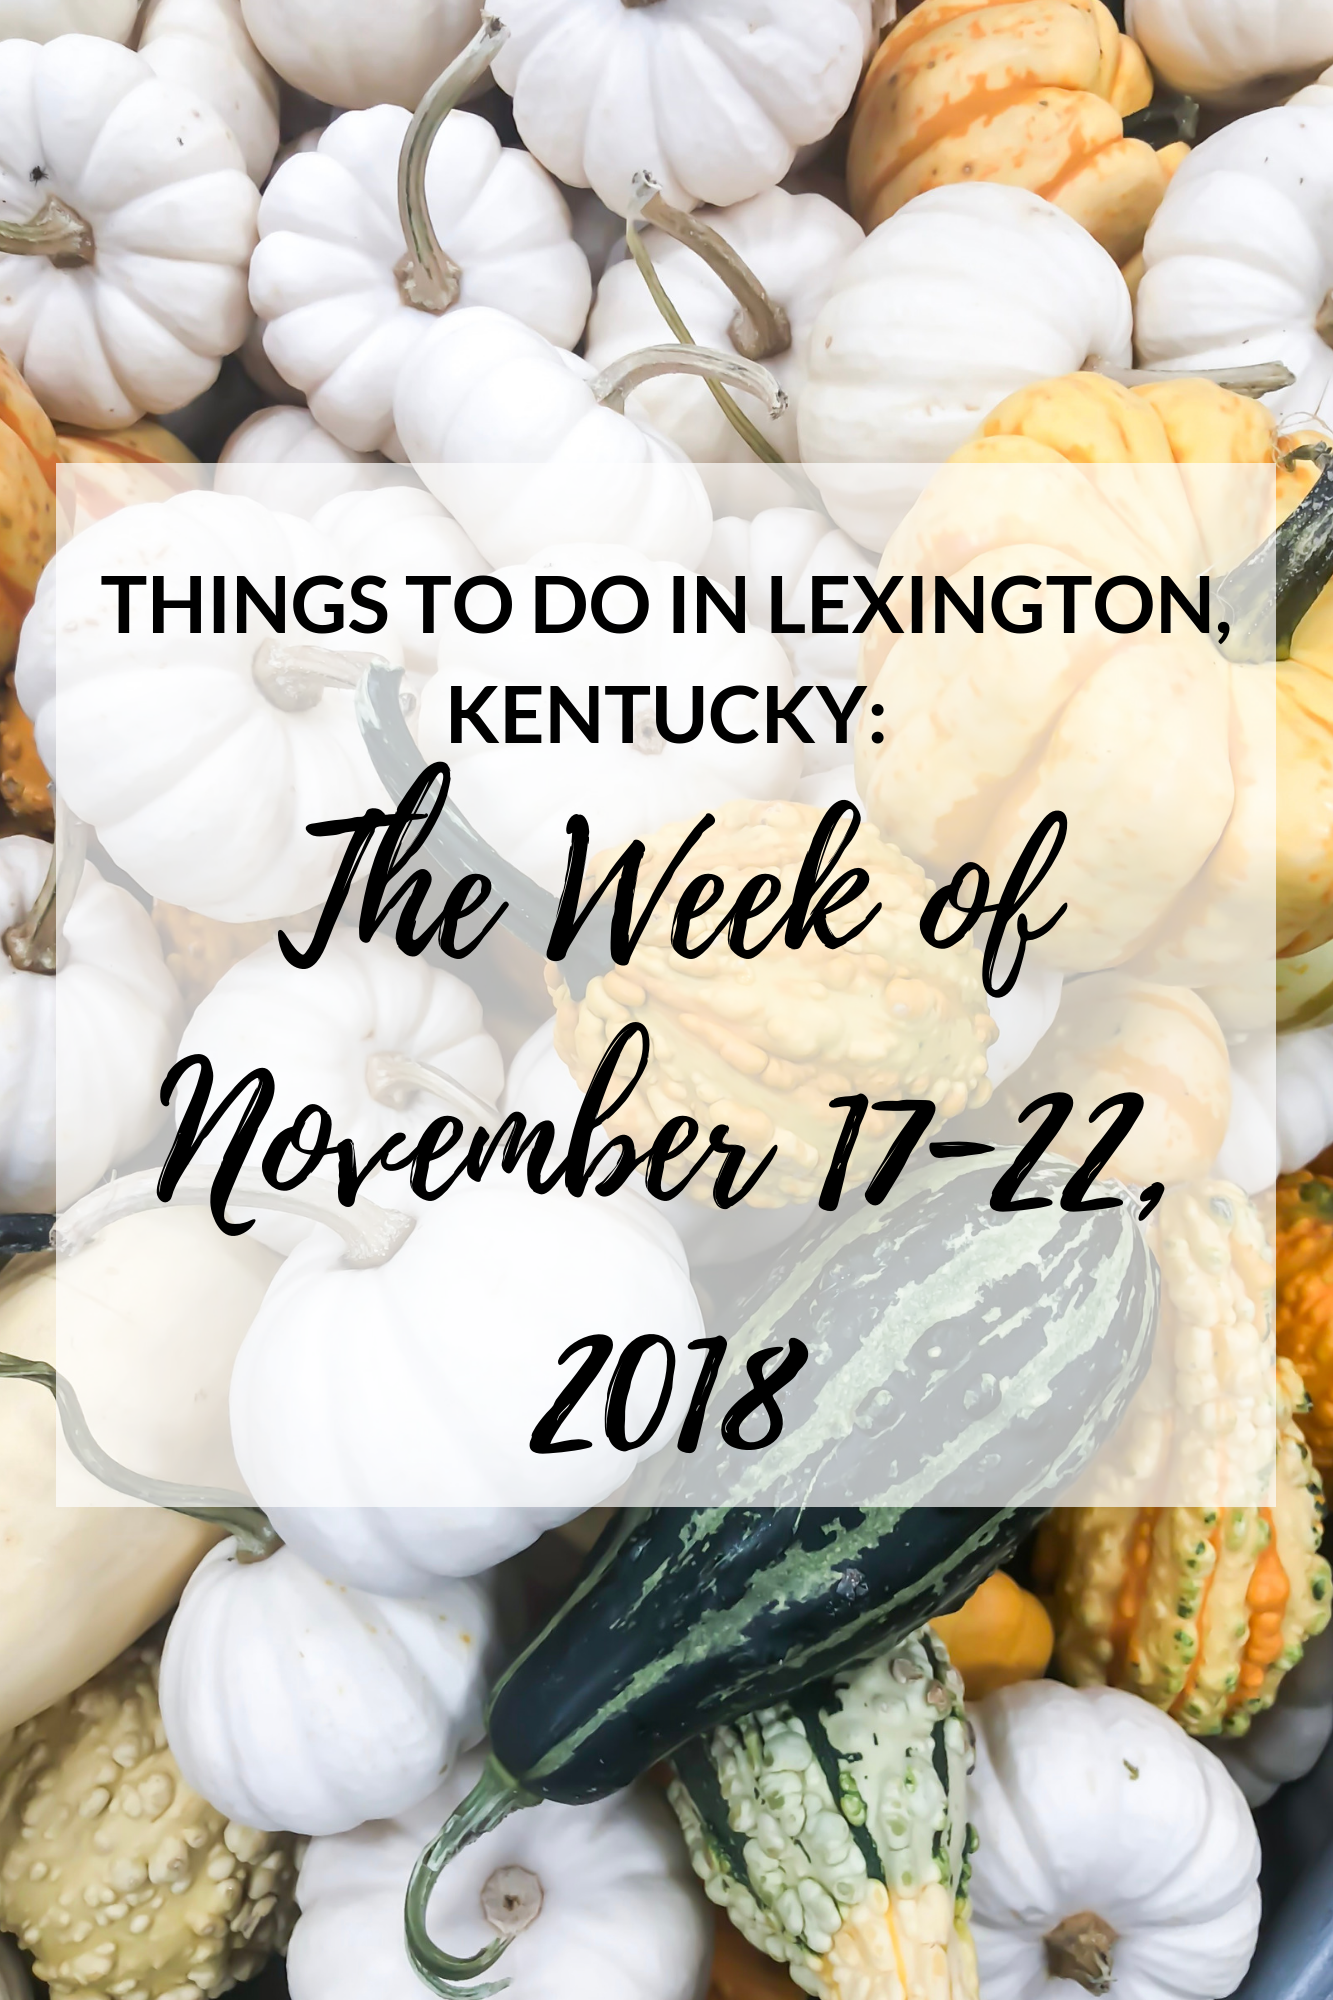 Things to Do In Lexington, Kentucky #thingstodo #event #lexingtonky #kentucky #visitlex #lexington #travel #holidays